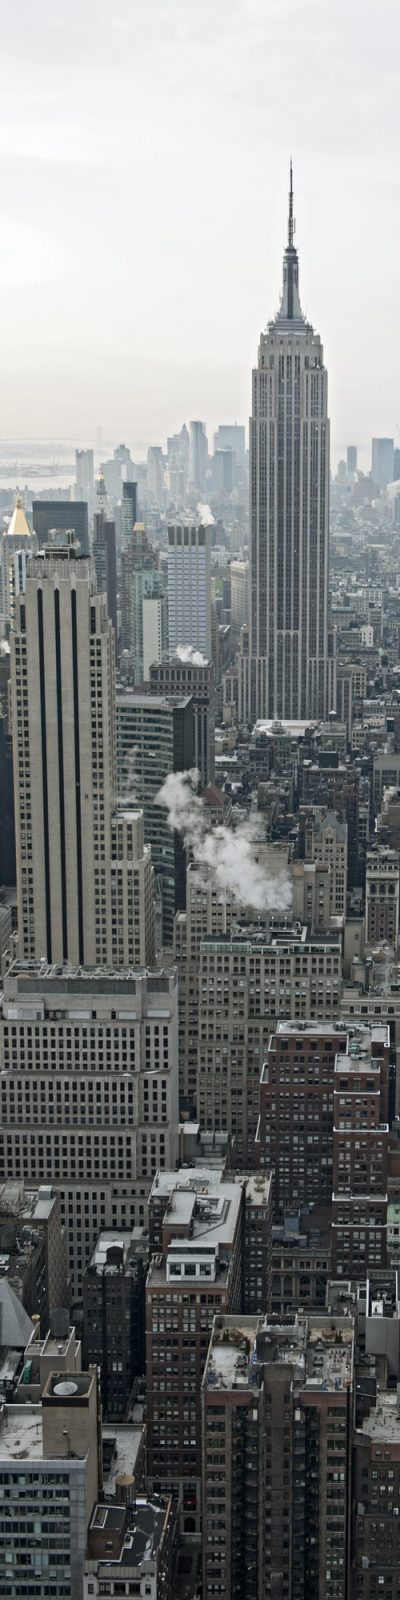 New York onsite IT support